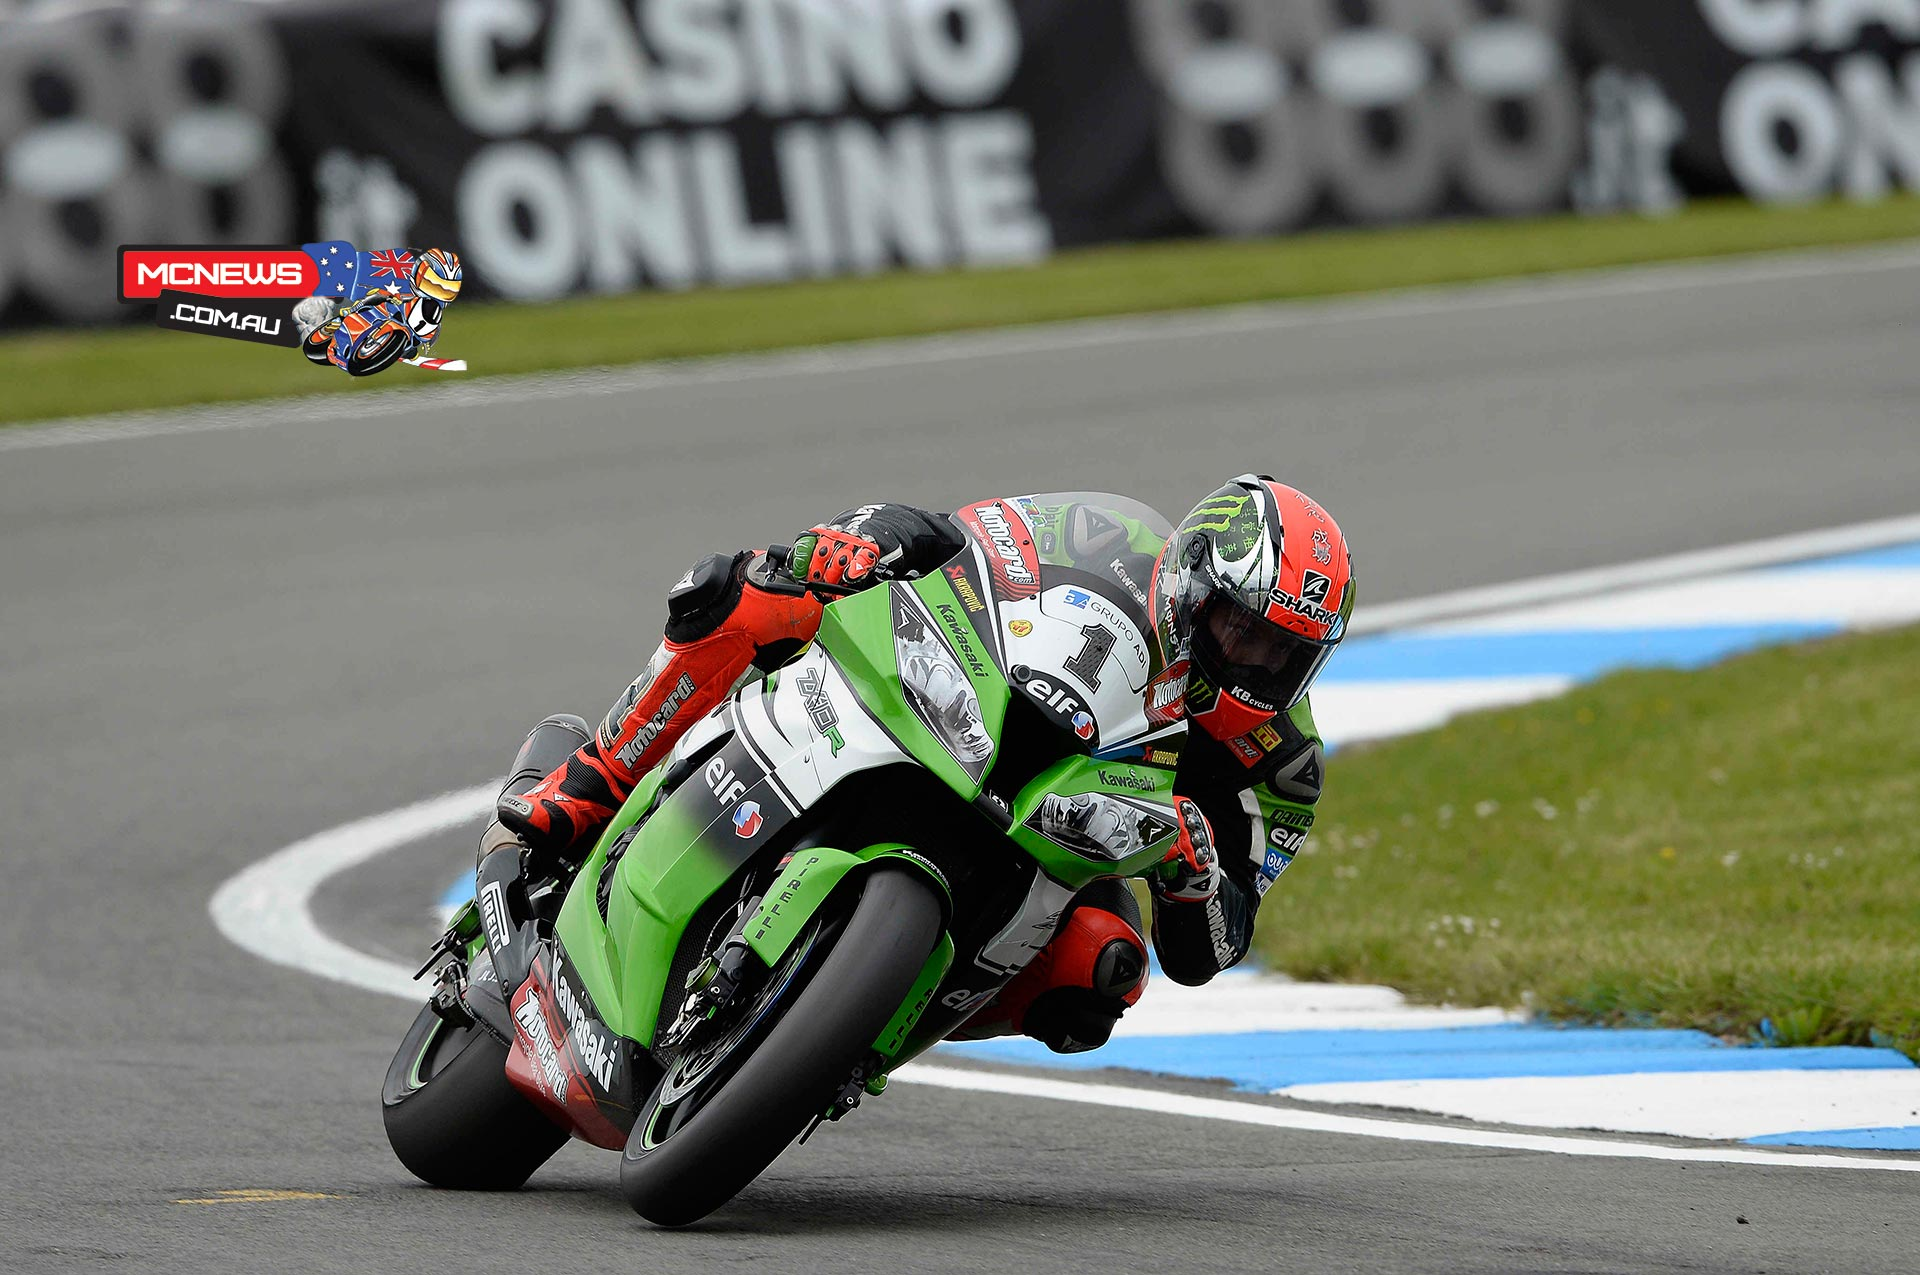 Tom Sykes (Kawasaki Racing Team) posted a series of 1.27 laps to round out the opening day on top at an overcast Donington Park. The reigning Champion was within half a second of his own outright circuit record and he takes an advantage of almost a quarter of a second into tomorrow.